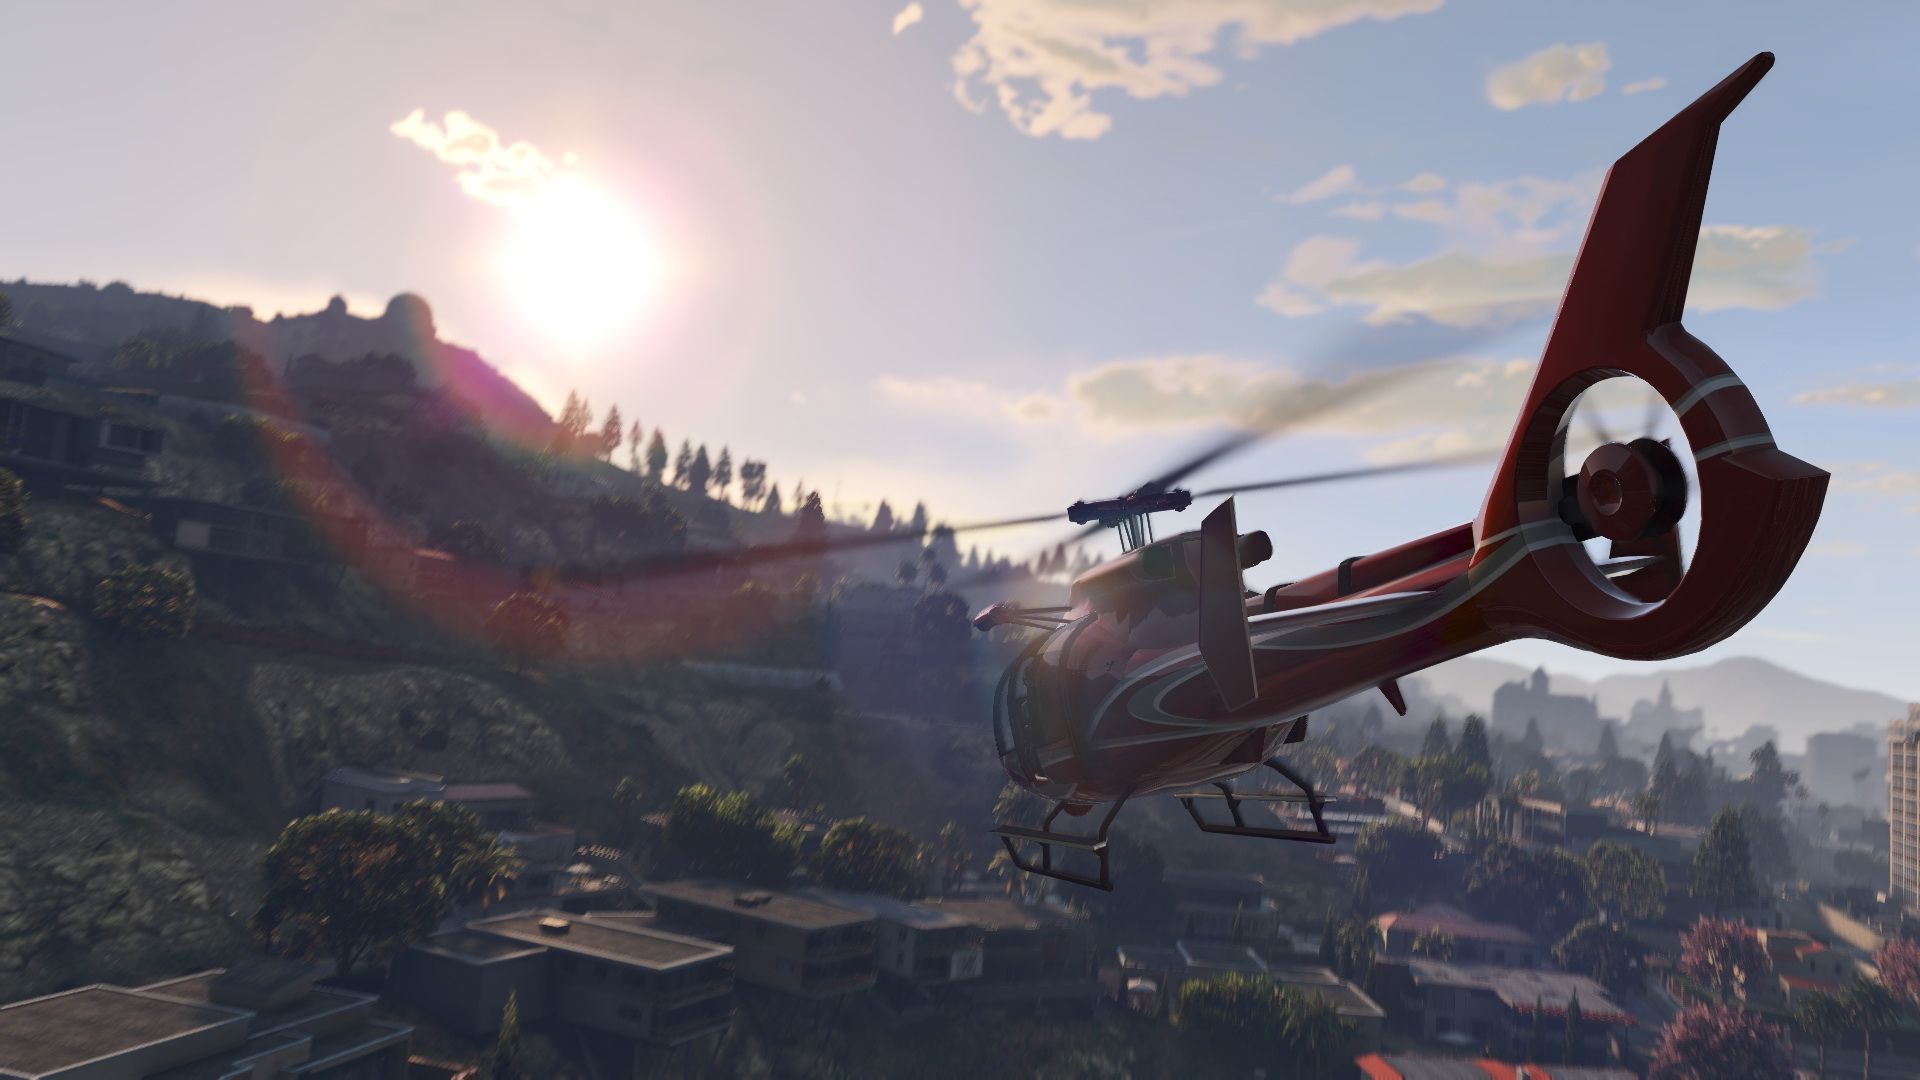 Gta v dual screen hd desktop wallpaper widescreen high - Gta v wallpaper ...